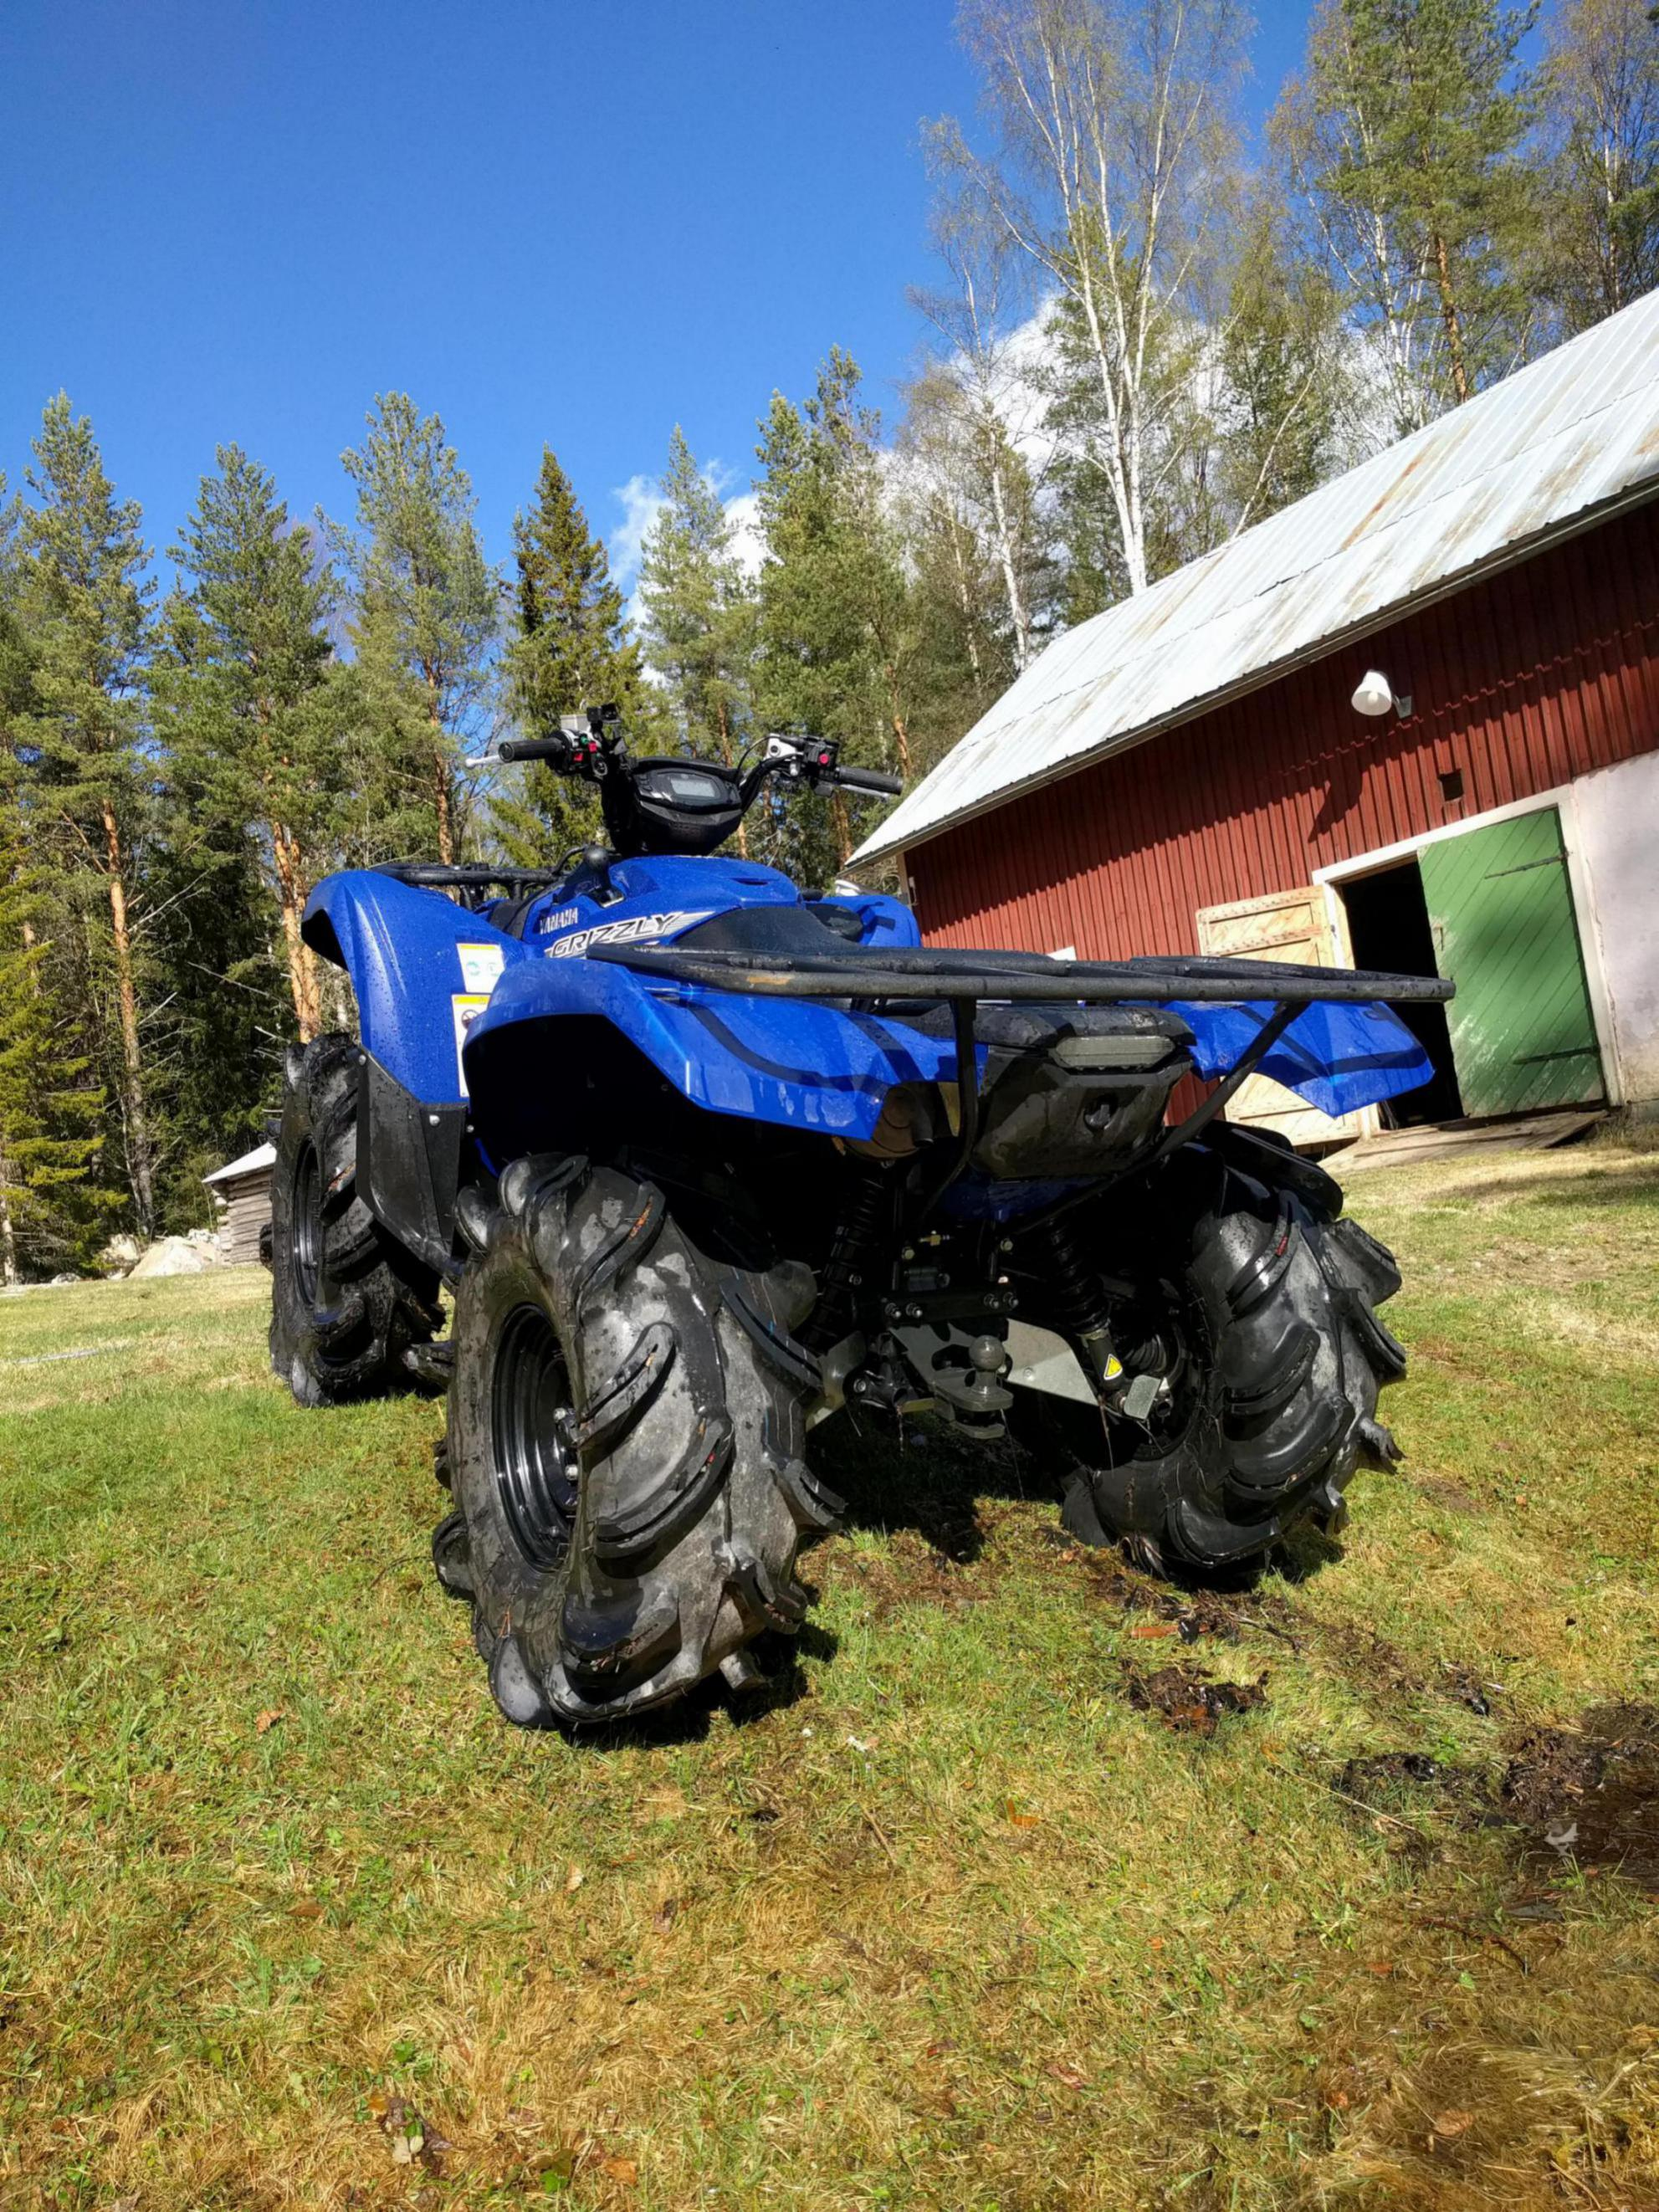 2017 Yamaha Grizzly >> 29,5 outlaws on 2016 grizzly ? - Yamaha Grizzly ATV Forum